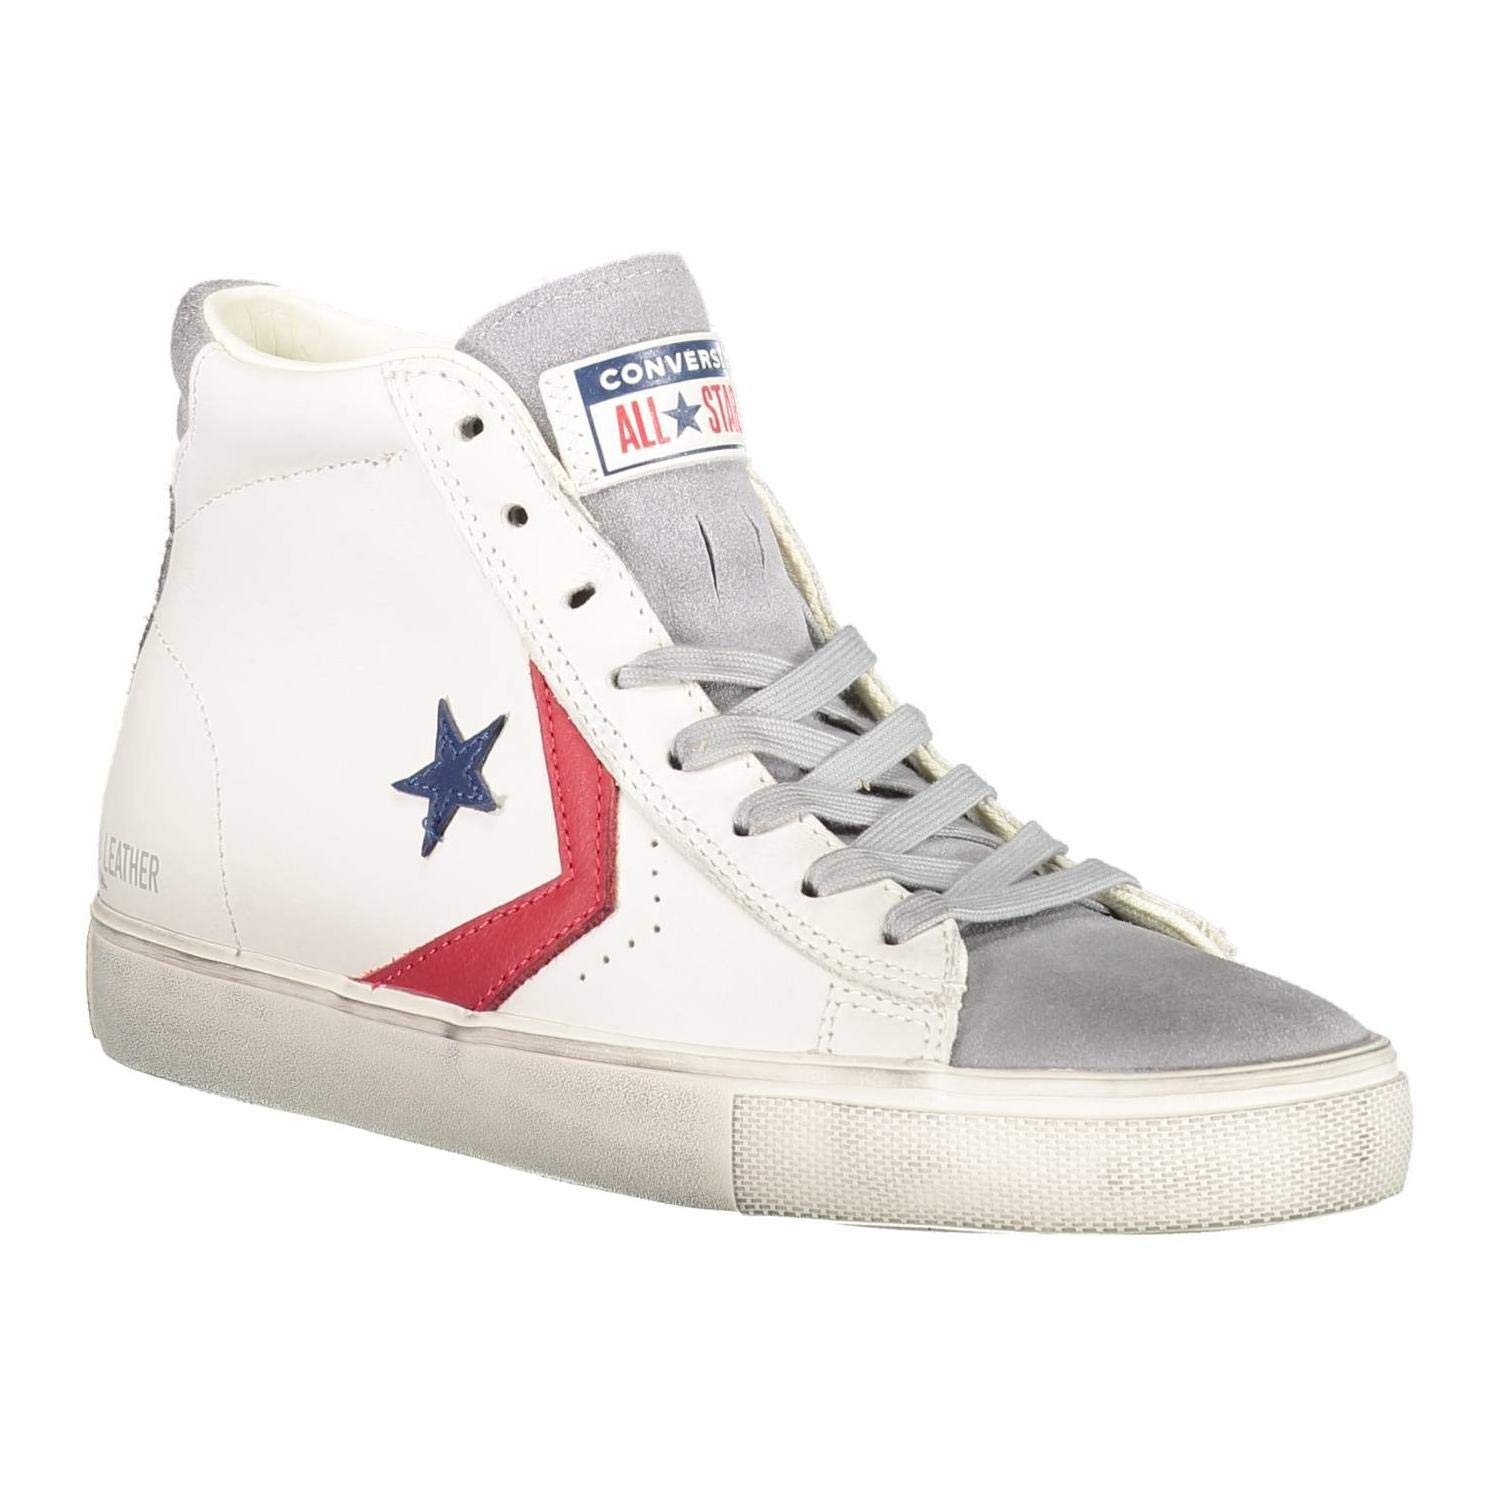 6b0909eb89a424 Converse Lifestyle Pro Leather Vulc Distressed Mid